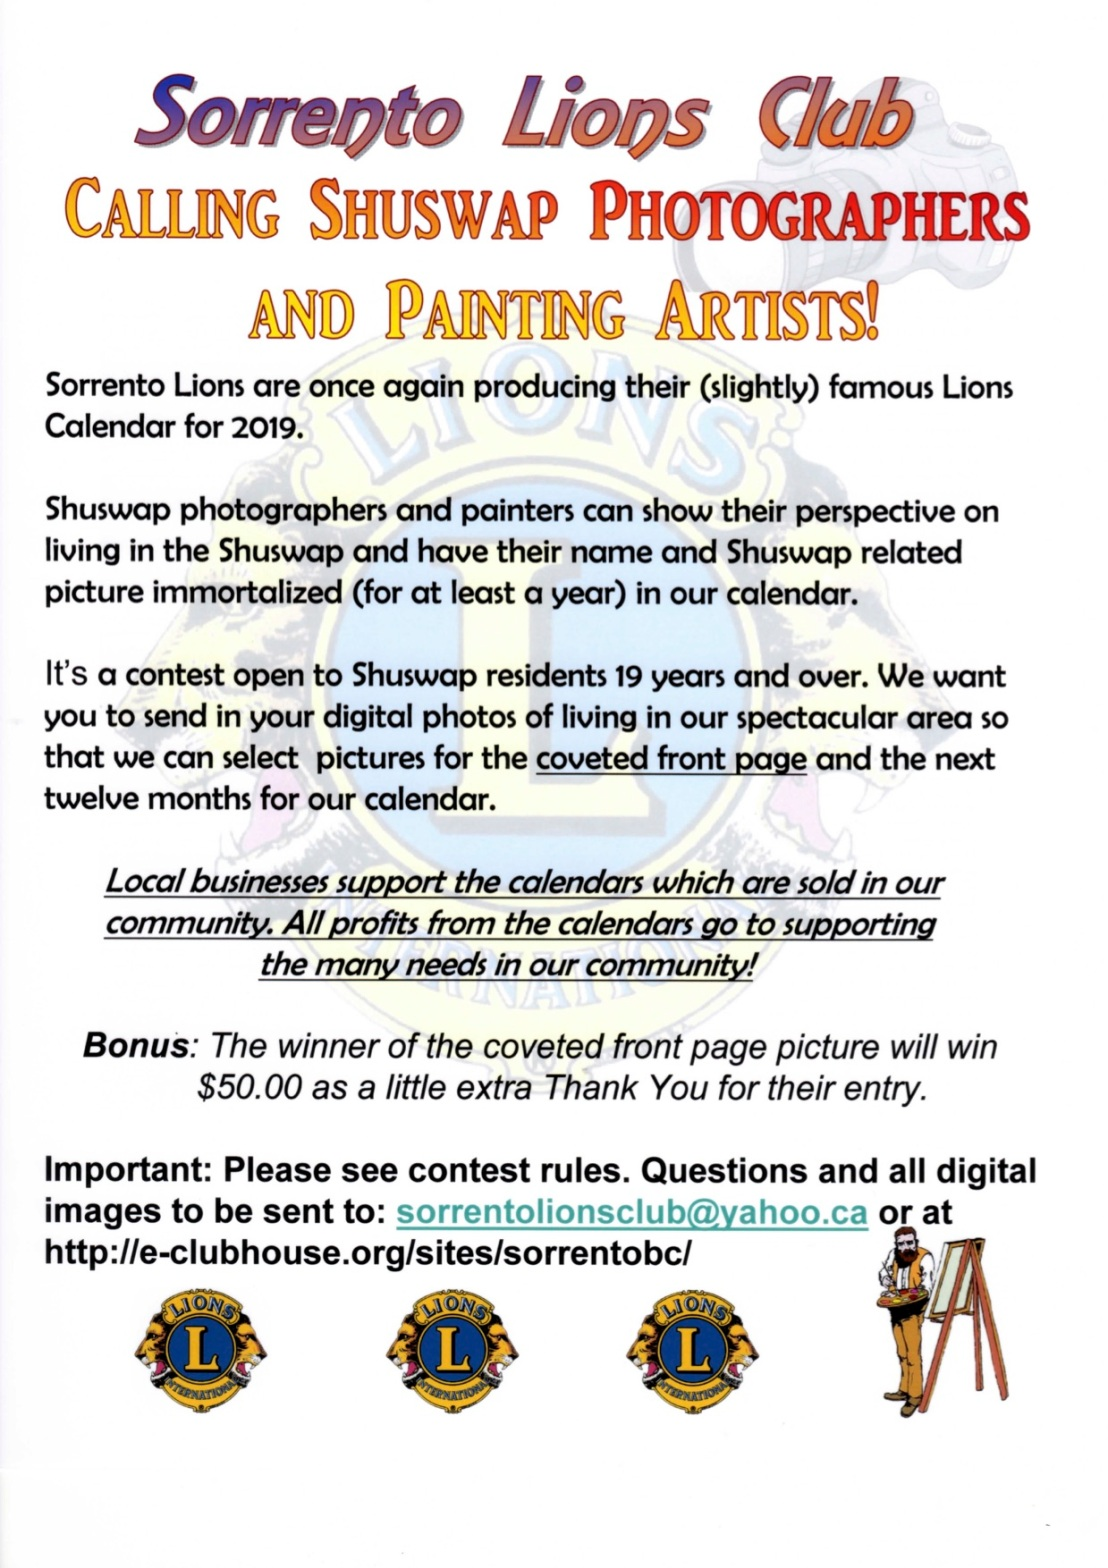 Sorrento Lions Club Photo Contest